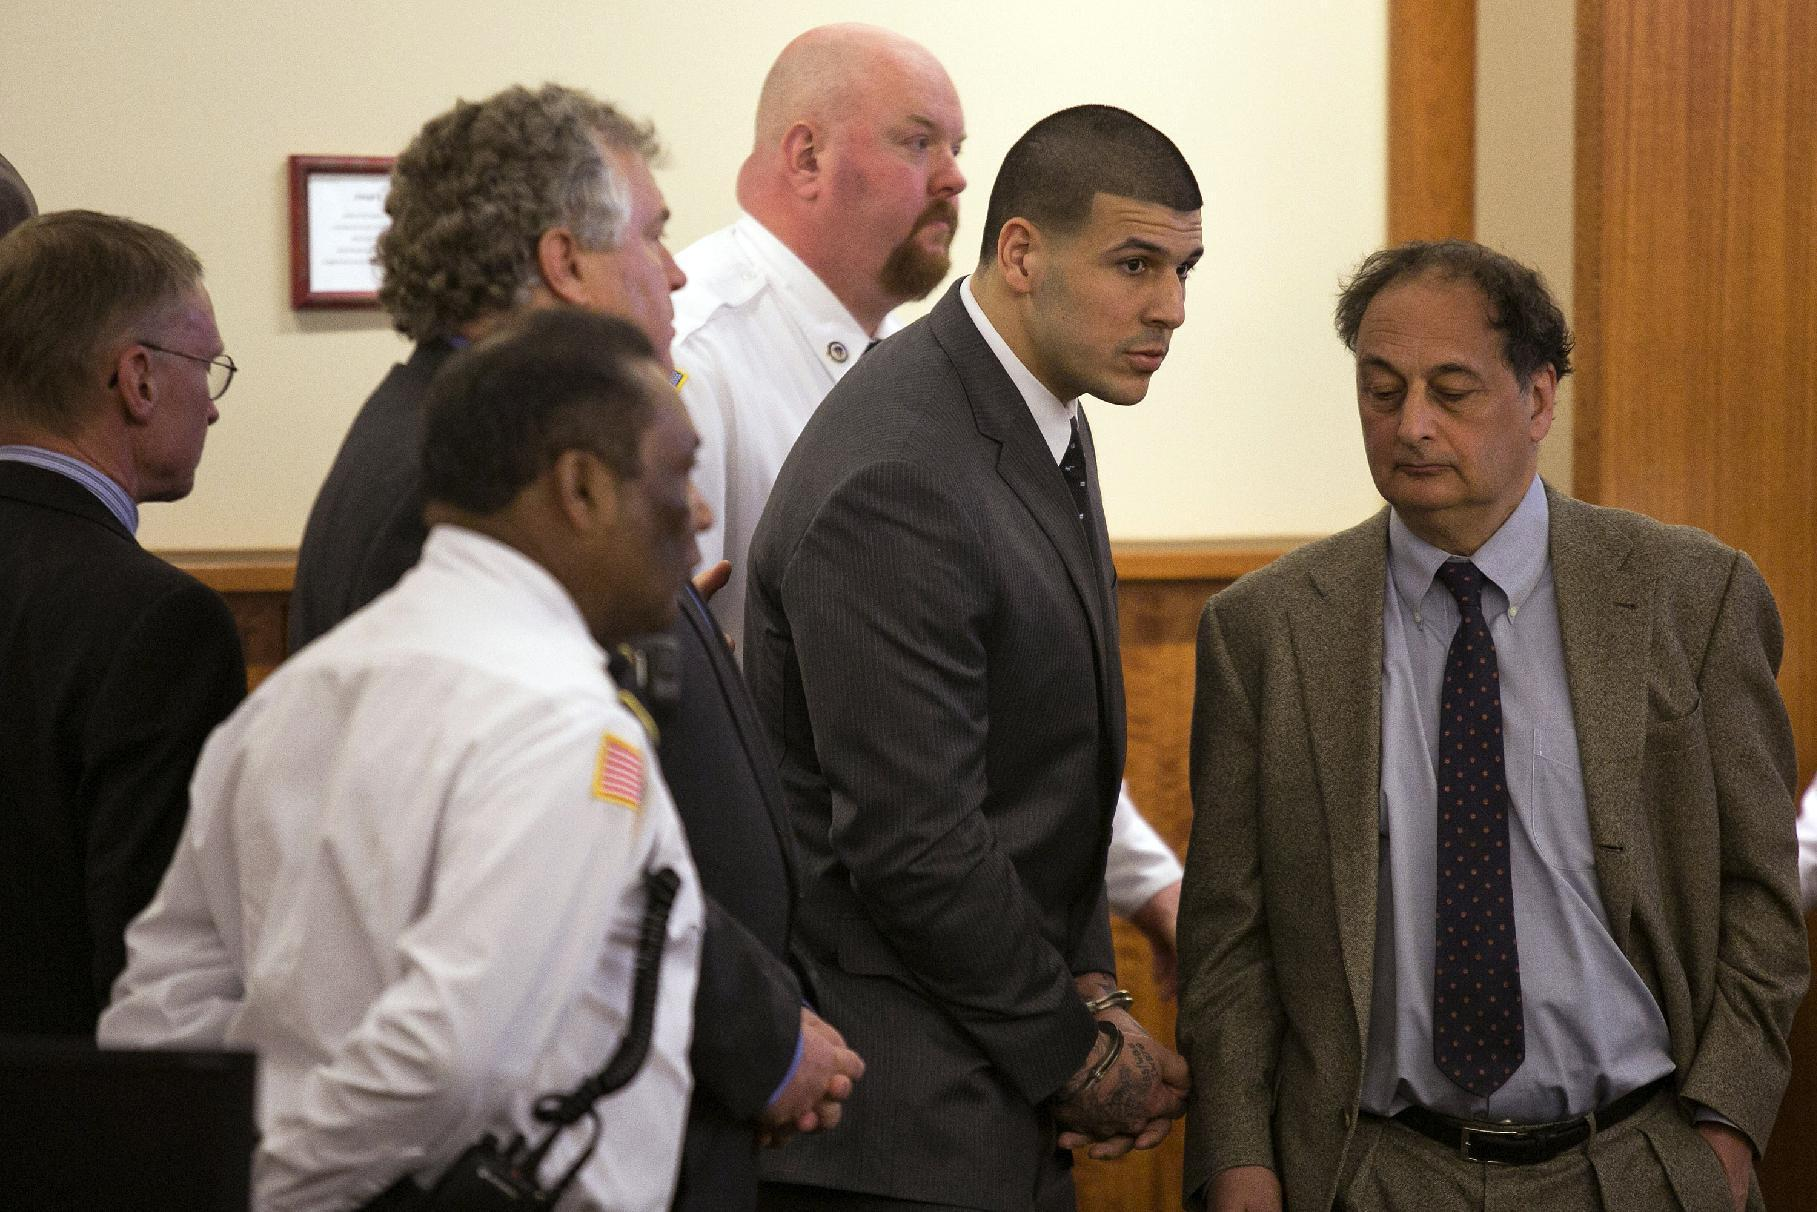 'We've never seen anything like this': Dan Wetzel on the Aaron Hernandez trial